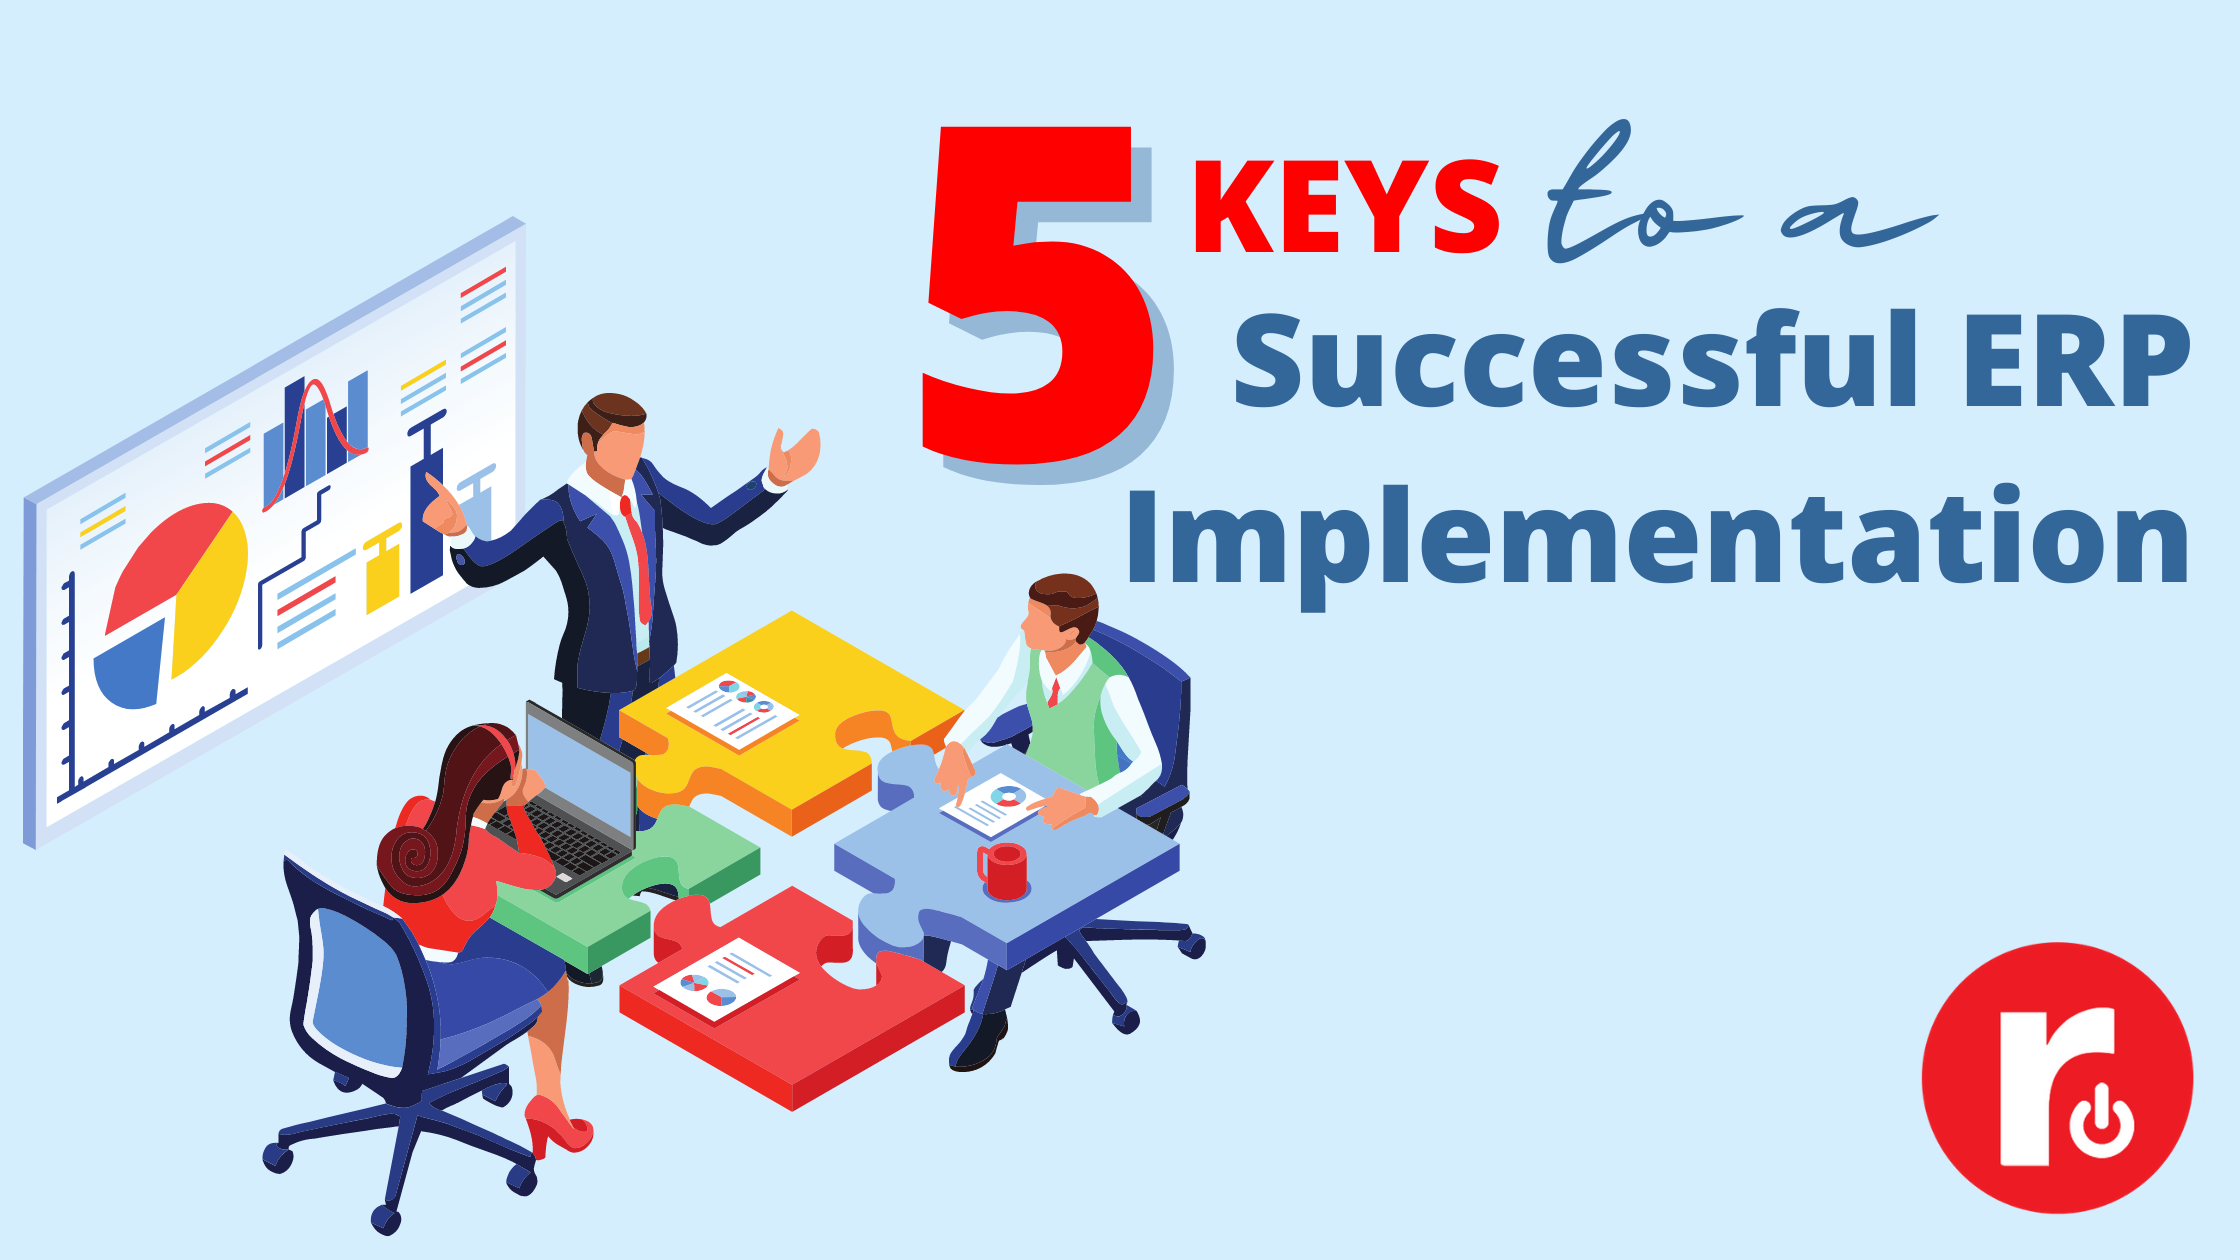 5 Keys to a Successful ERP Implementation